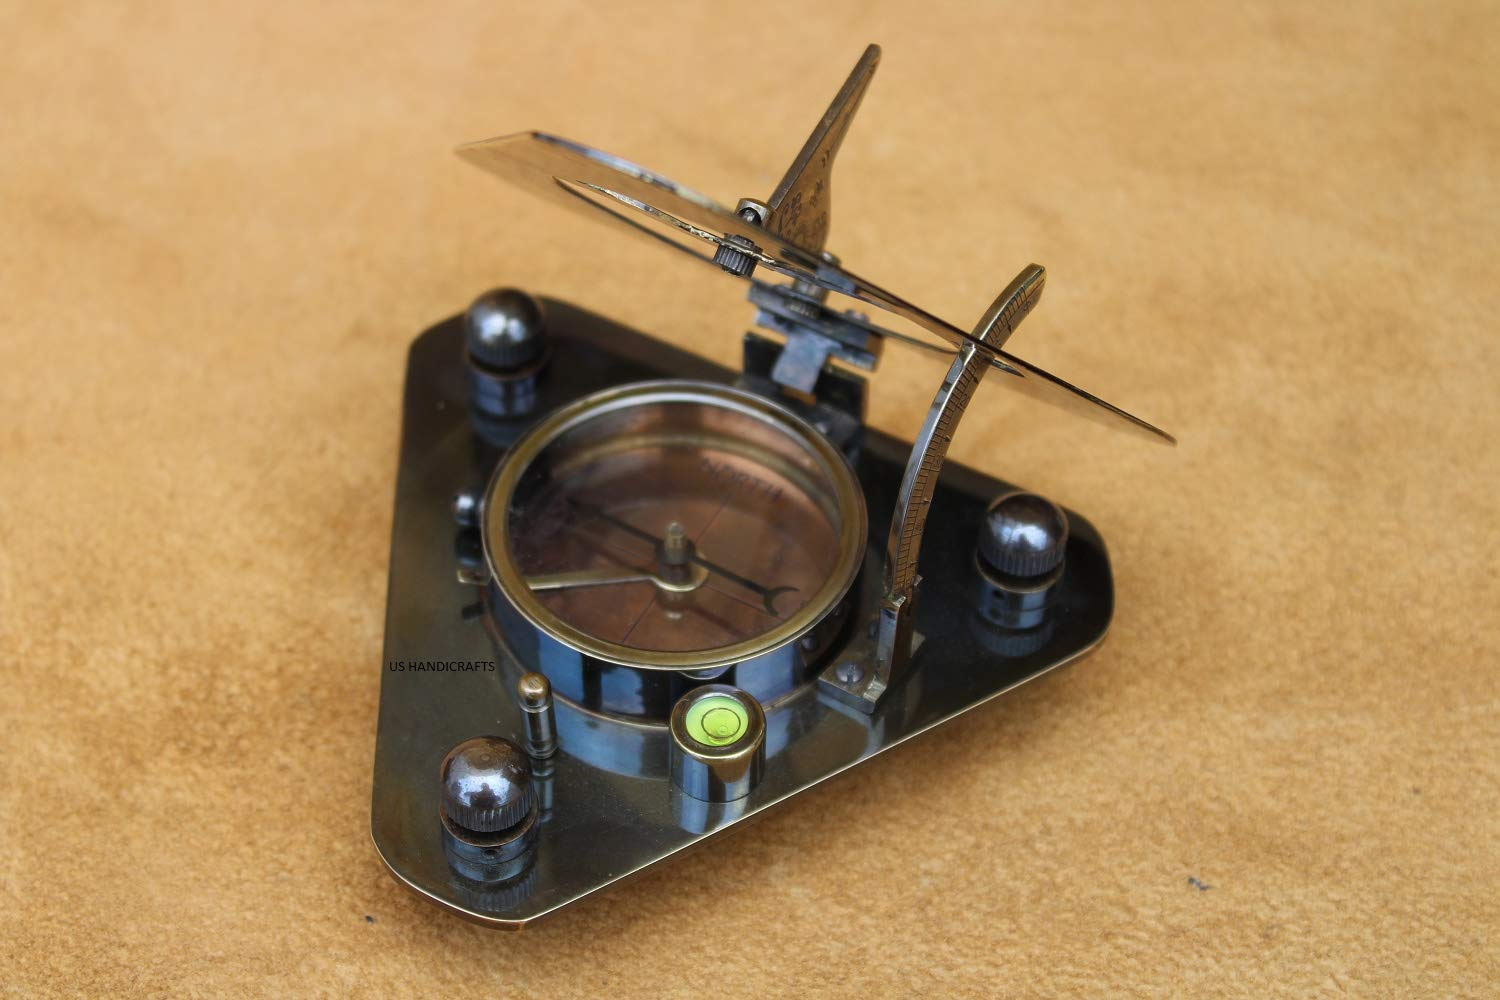 US Handicrafts History Brass Triangle Sundial Compass in Hardwood Box. by US Handicrafts (Image #4)